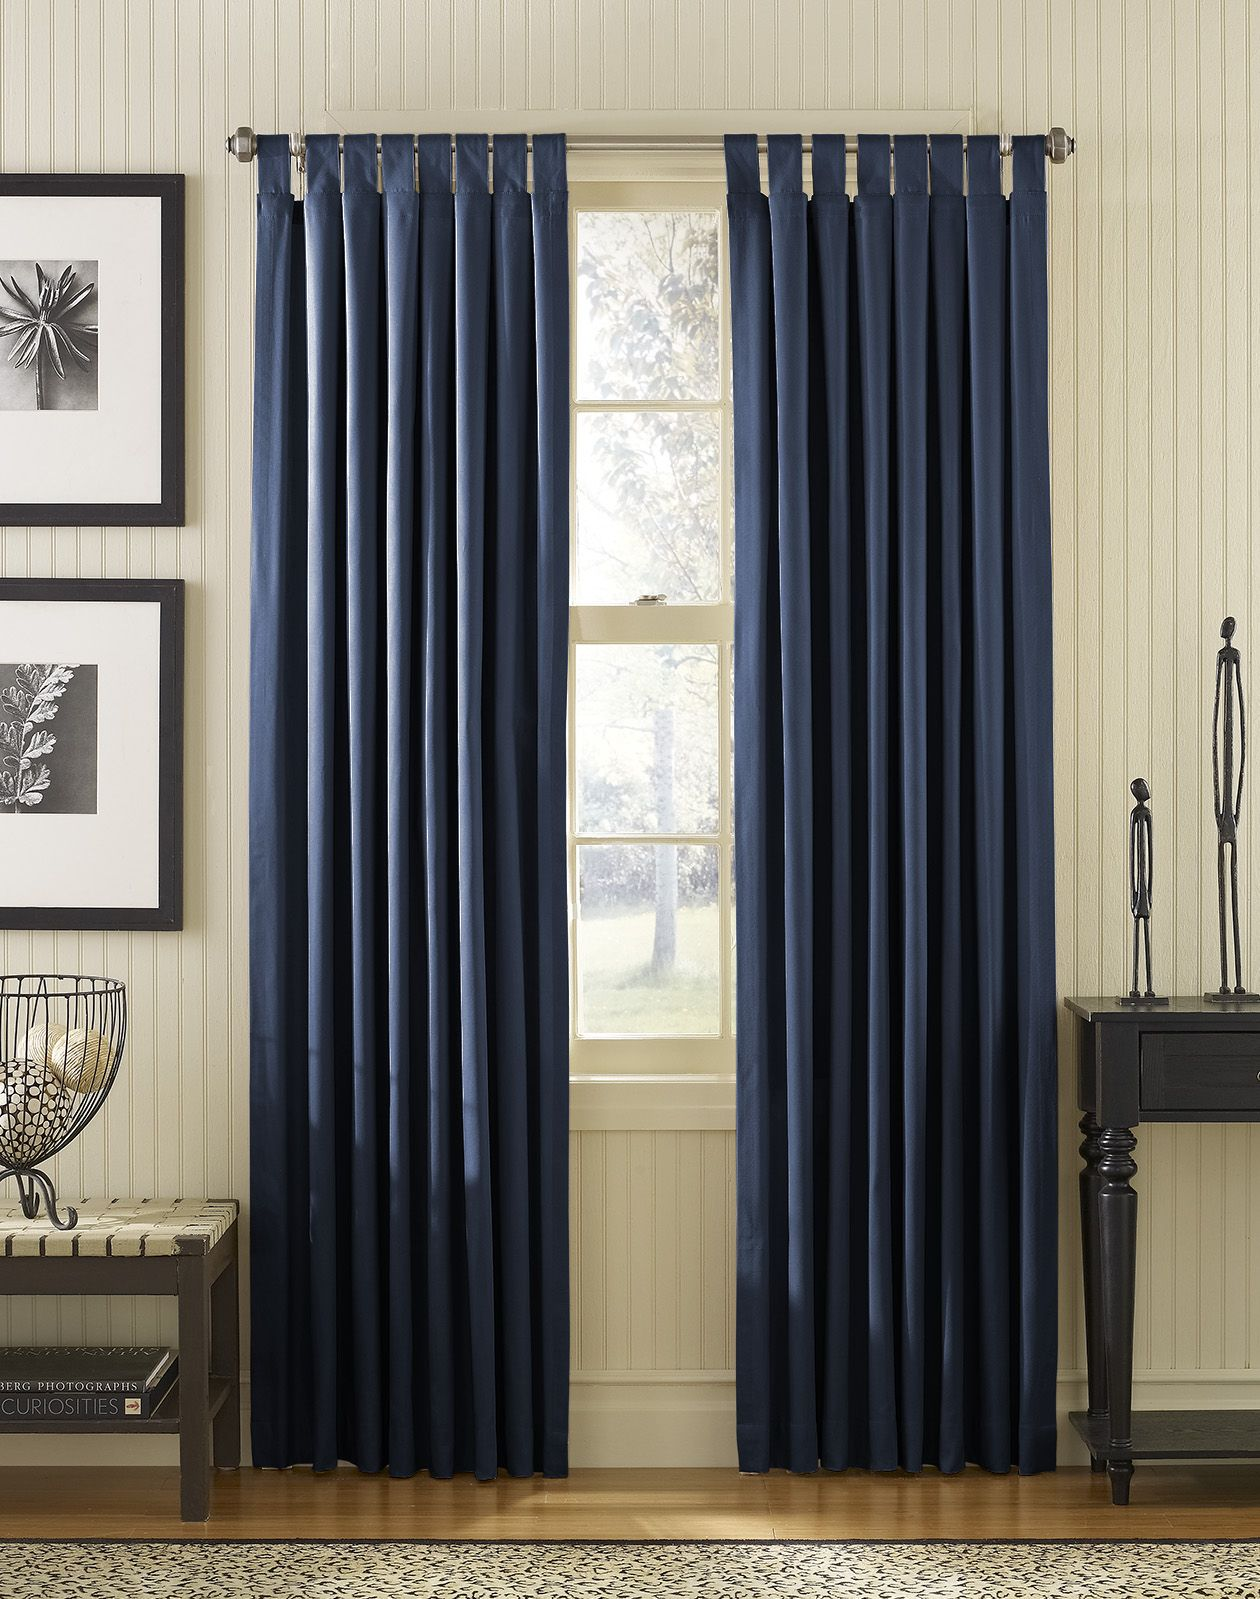 Bed Bath And Beyond Window Curtains Living Room Curtains Bed Bath Beyond  House Made Of. Bed Bath And Beyond Bedroom   PierPointSprings com